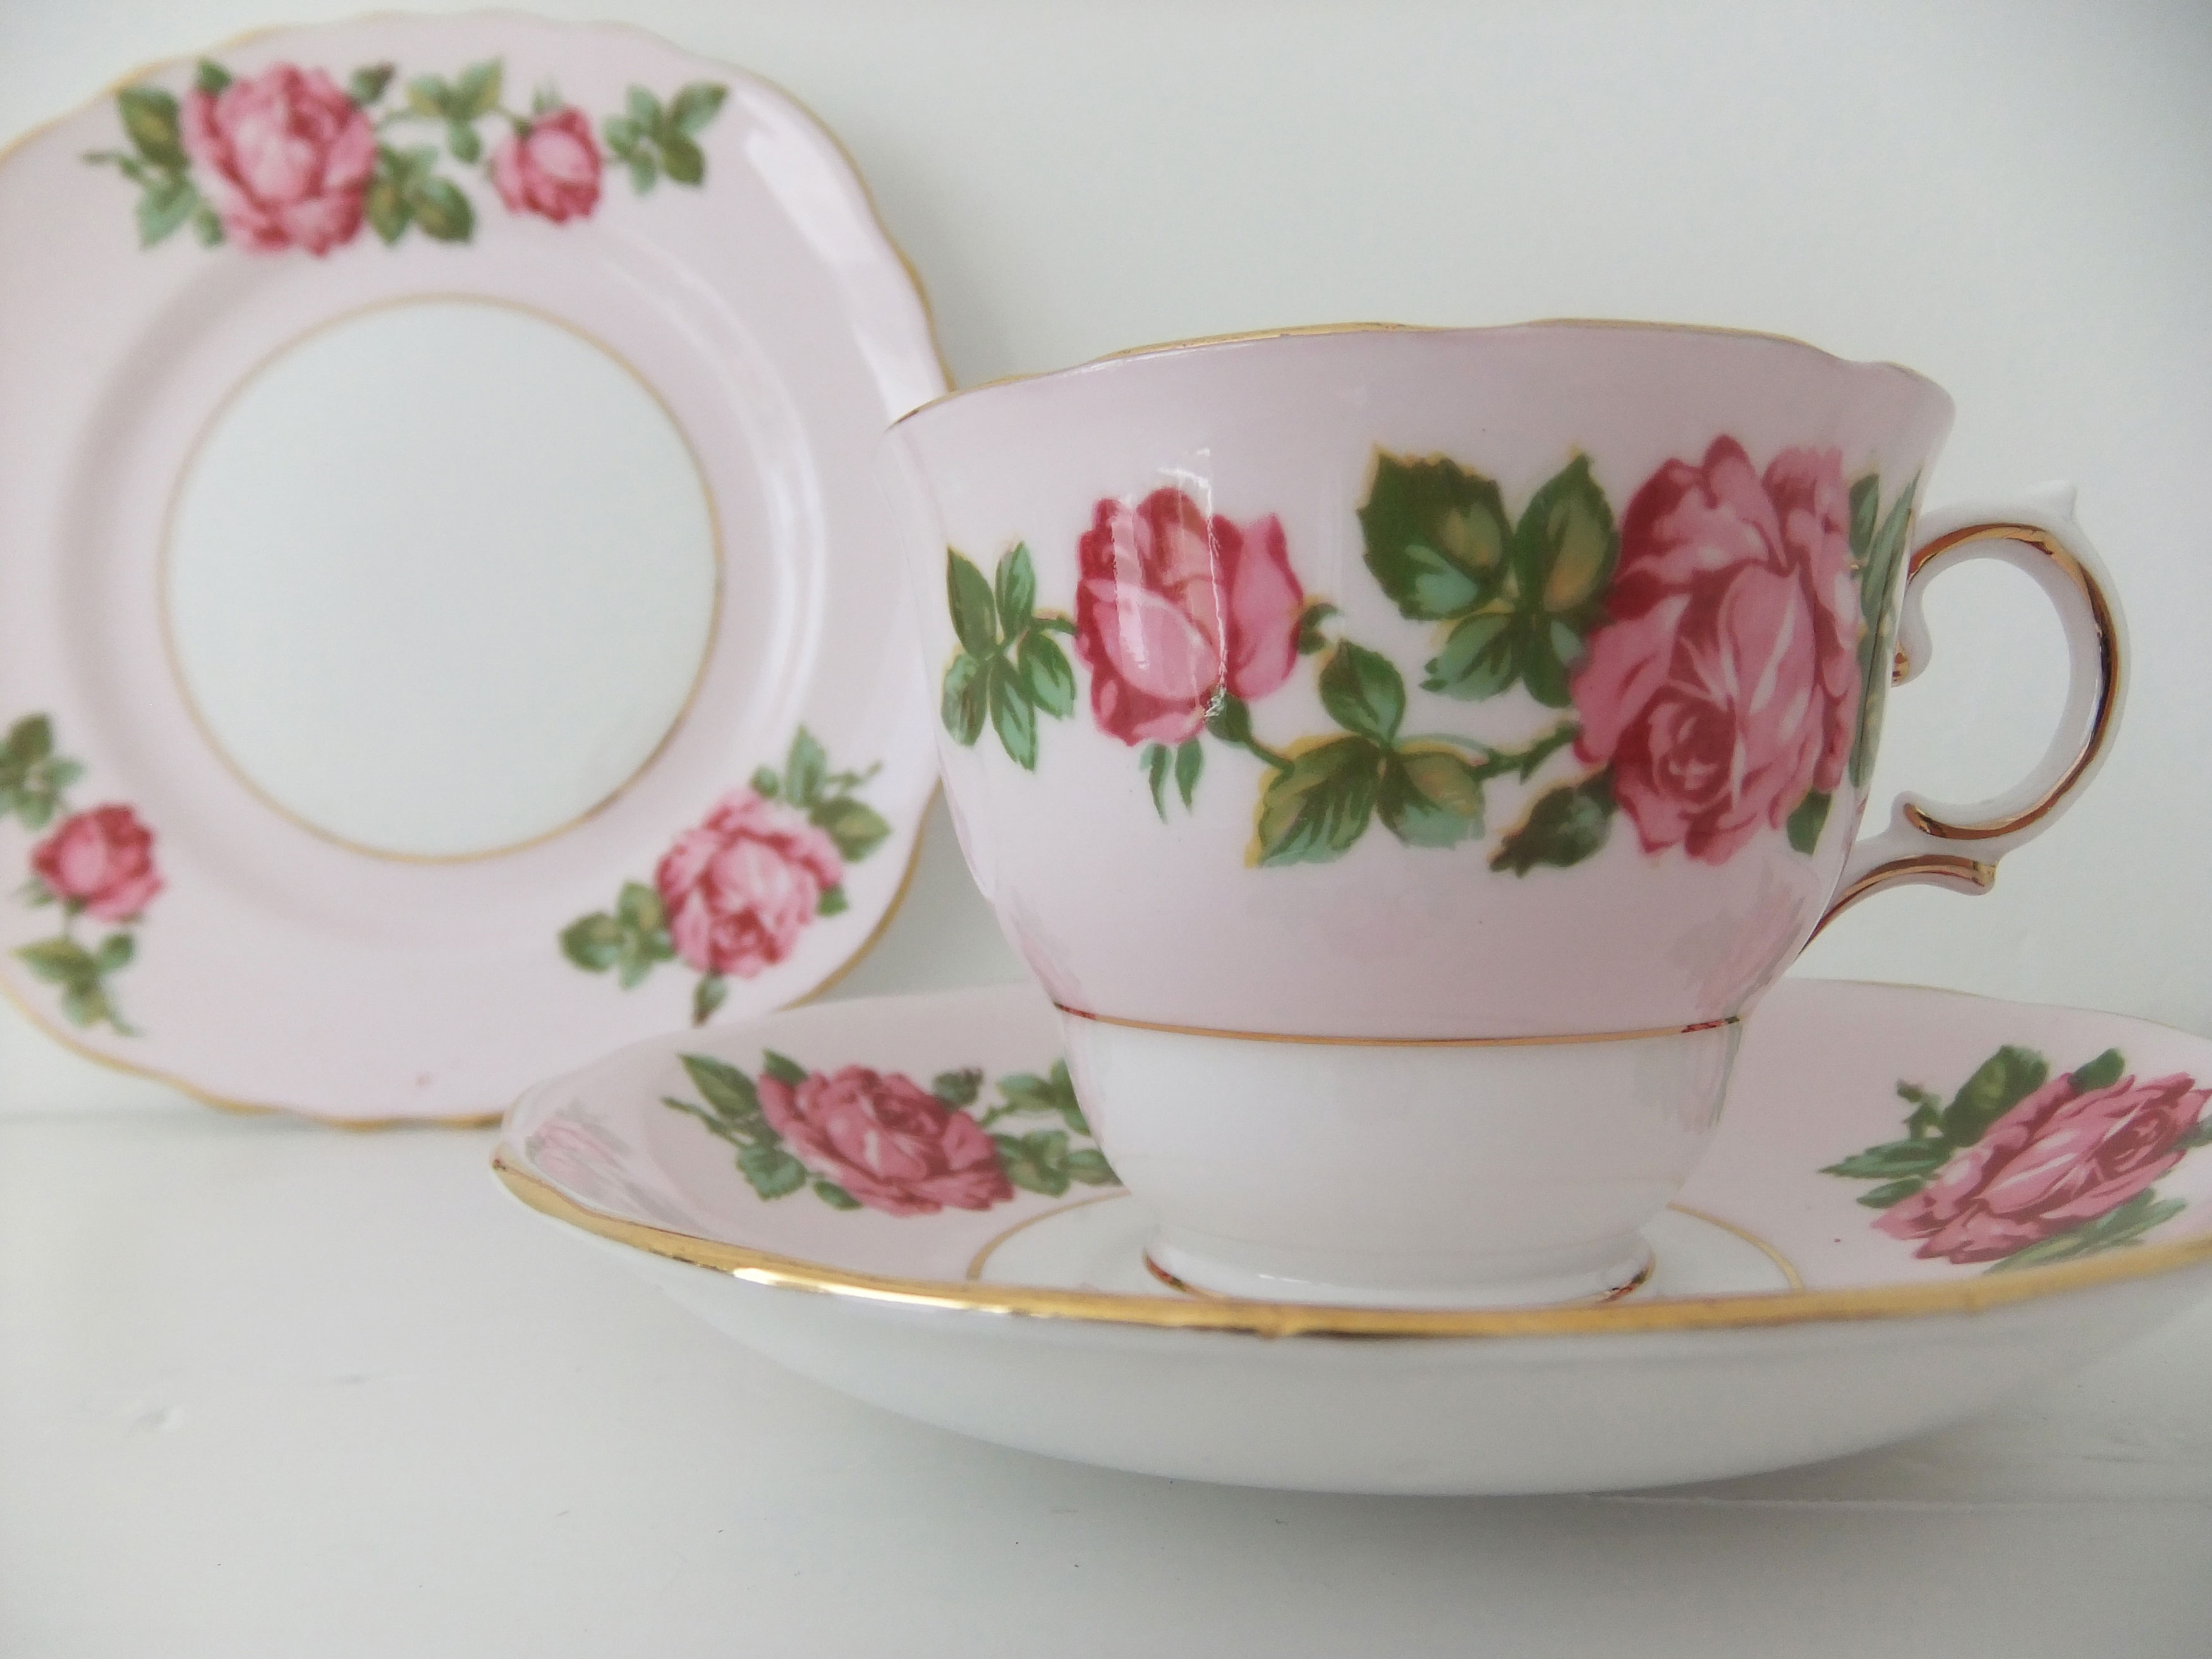 Vintage China tea cup saucer and plate - Vintage Colclough English Bone China - pink with pink roses & Vintage China Tea Cup Saucer And Plate - Vintage Colclough English ...